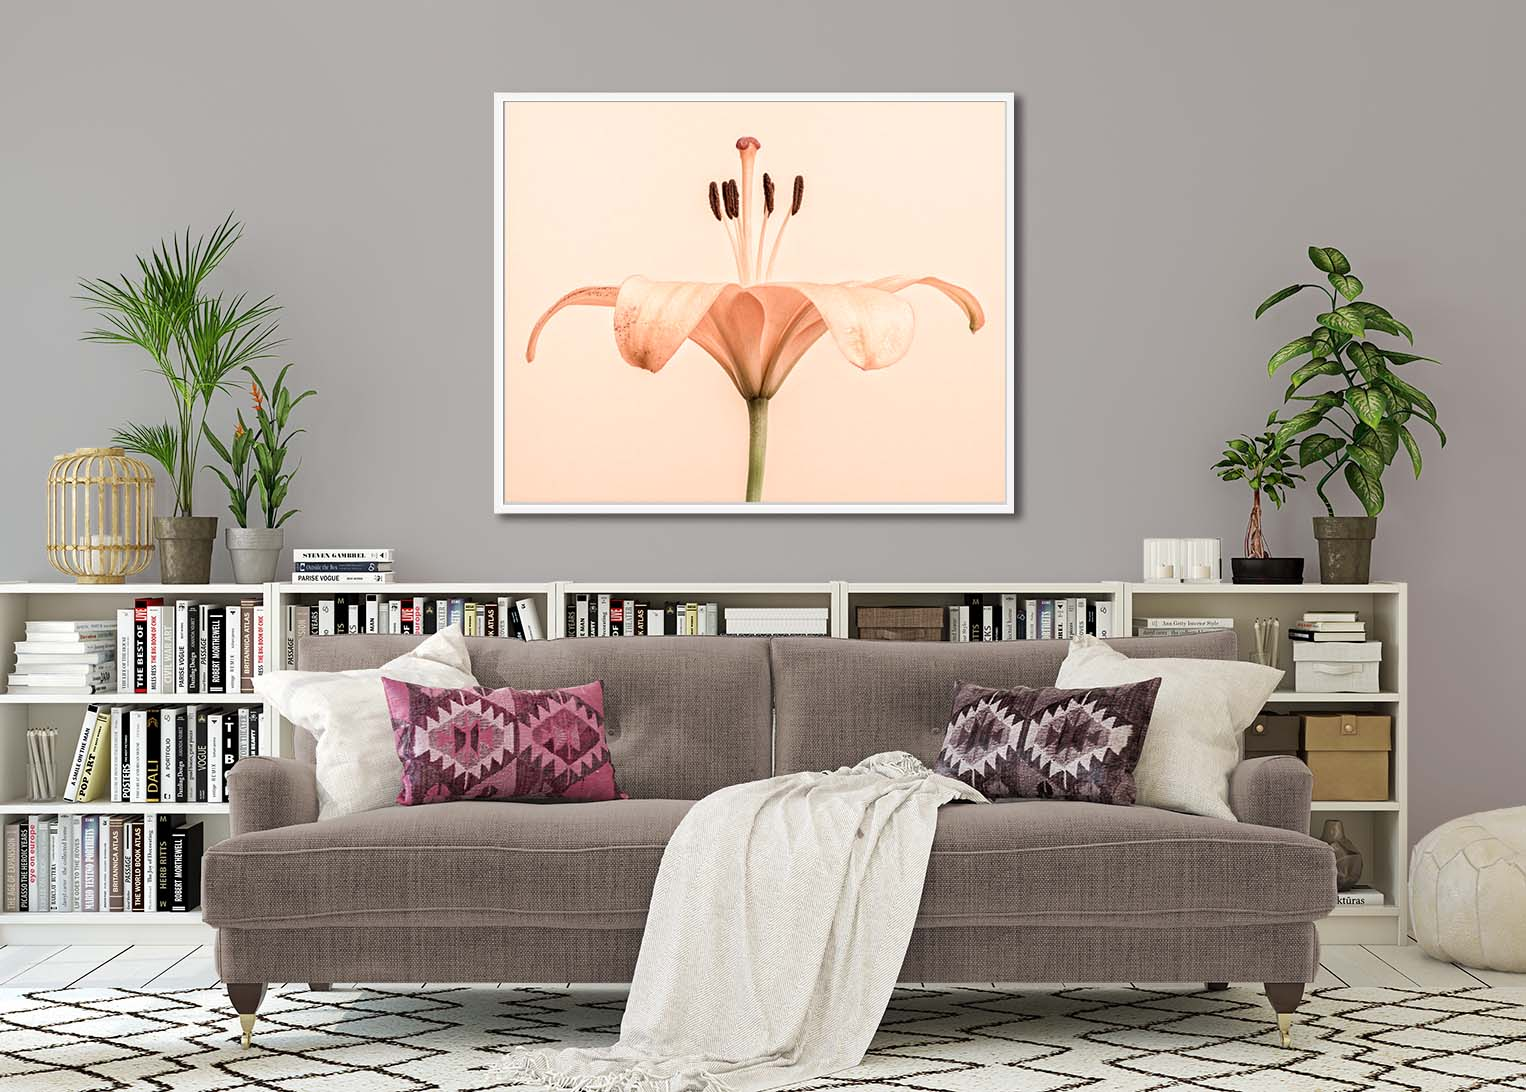 Lily Unfurled. Limited edition photographic print of a lily by fine art photographer Paul Coghlin.